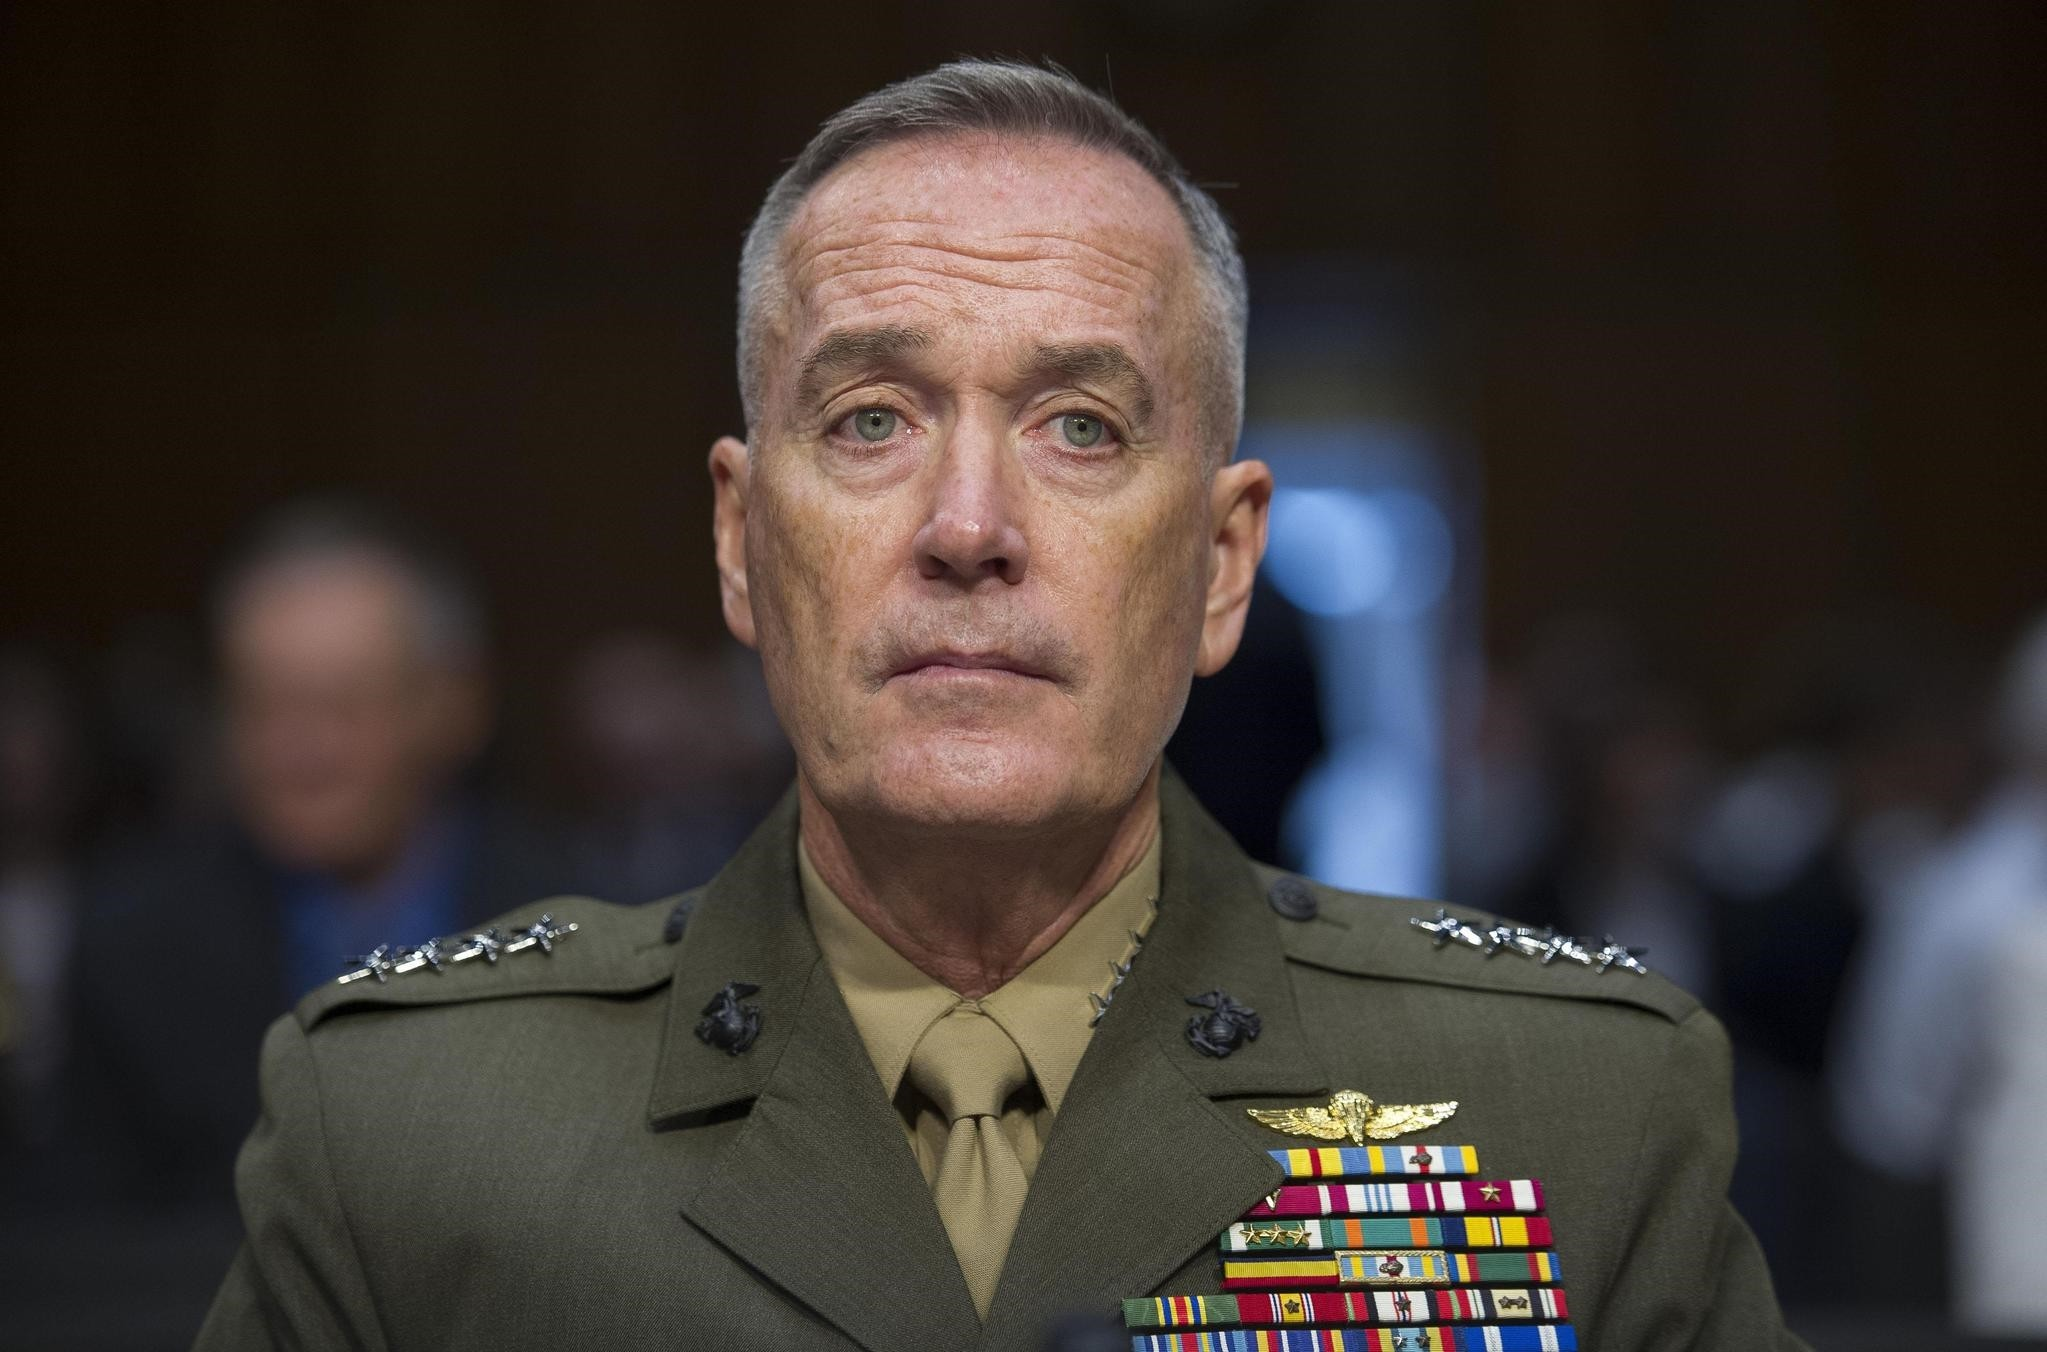 Gen. Joseph Dunford, Jr., testifies during his Senate Armed Services Committee confirmation hearing to become the Chairman of the Joint Chiefs of Staff, on Capitol Hill in Washington. (AP Photo)